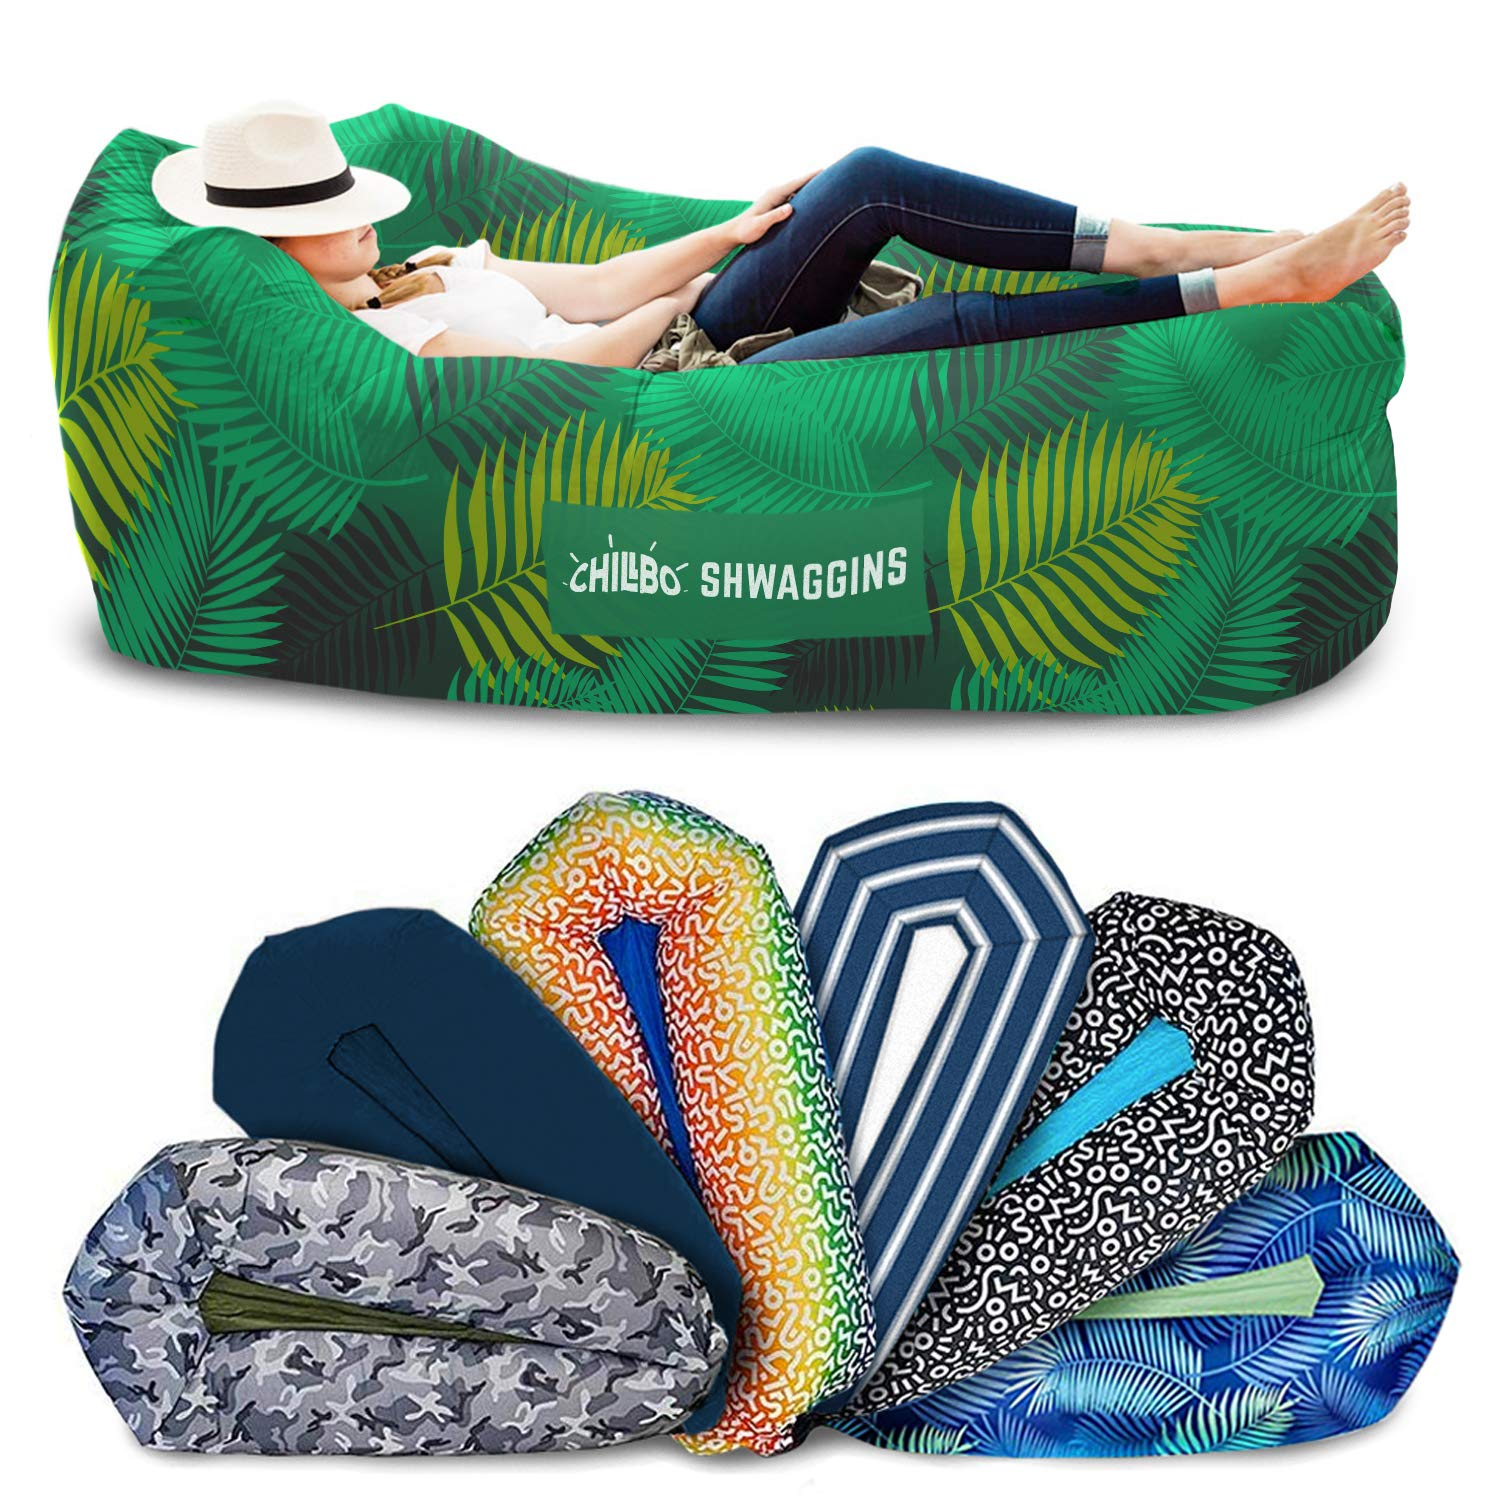 Chillbo SHWAGGINS 2.0 Best Inflatable Lounger Portable Hammock Air Sofa and Camping Chair Ideal Gift Inflatable Couch and Beach Chair Camping Accessories for Picnics & Festivals (Green Leaf) by Chillbo